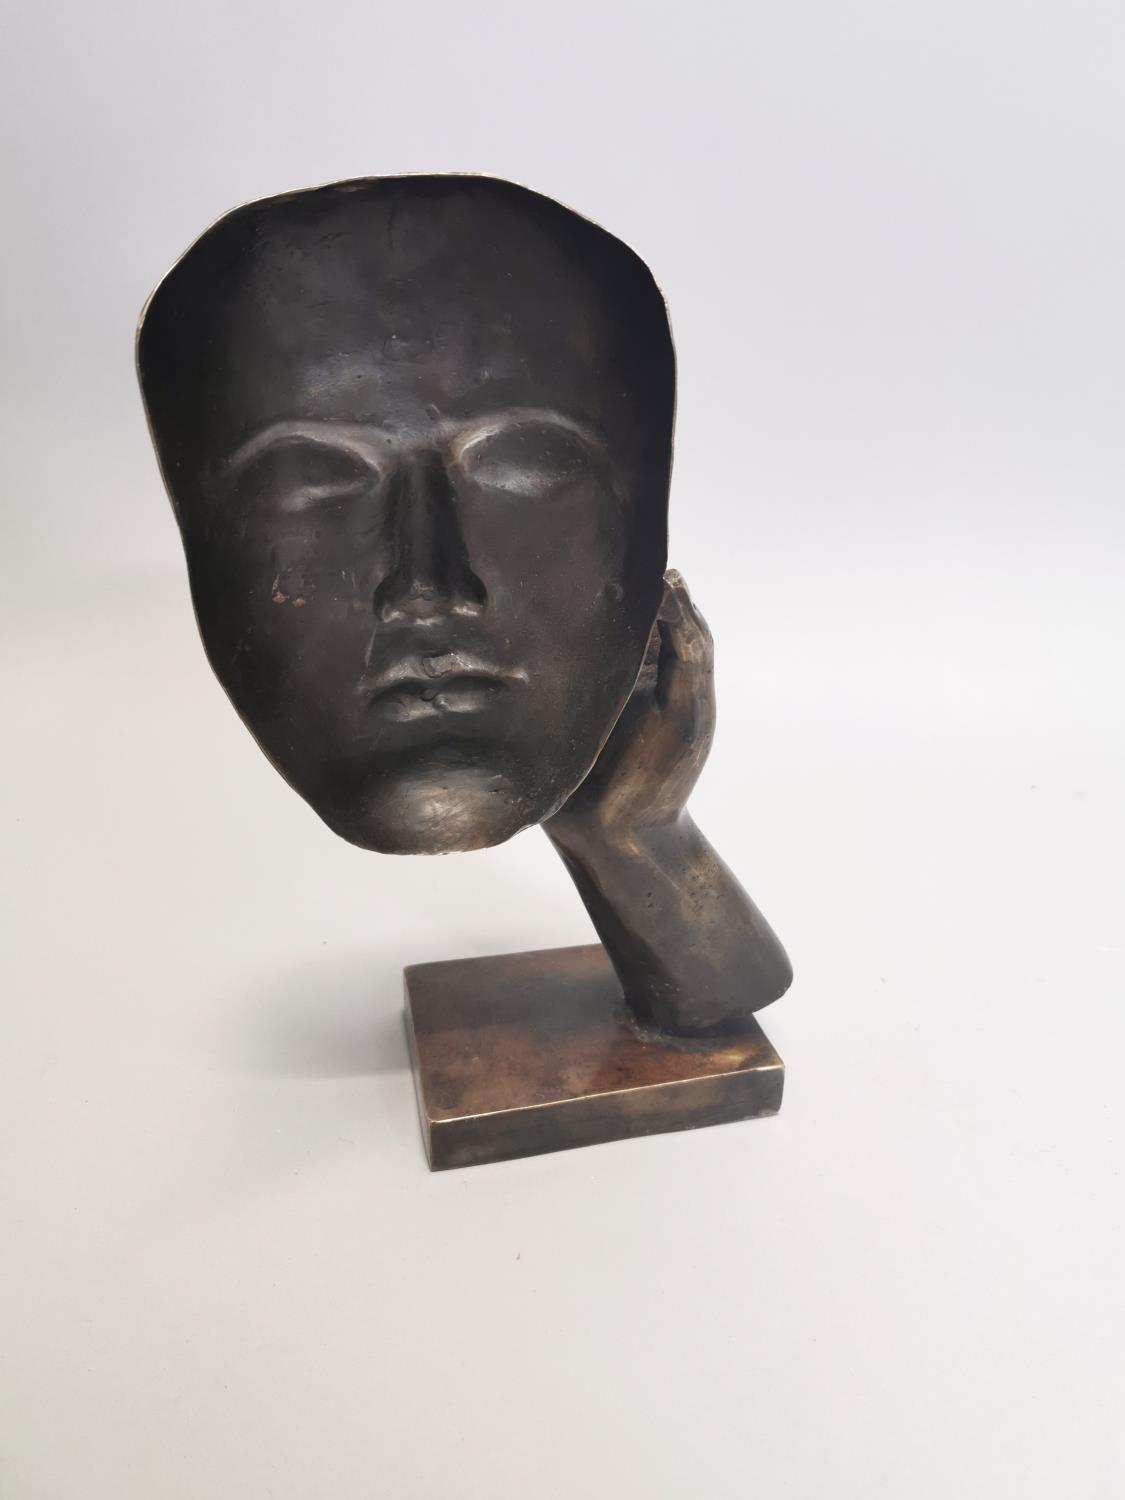 Bronze model of a hand and mask - Image 6 of 7